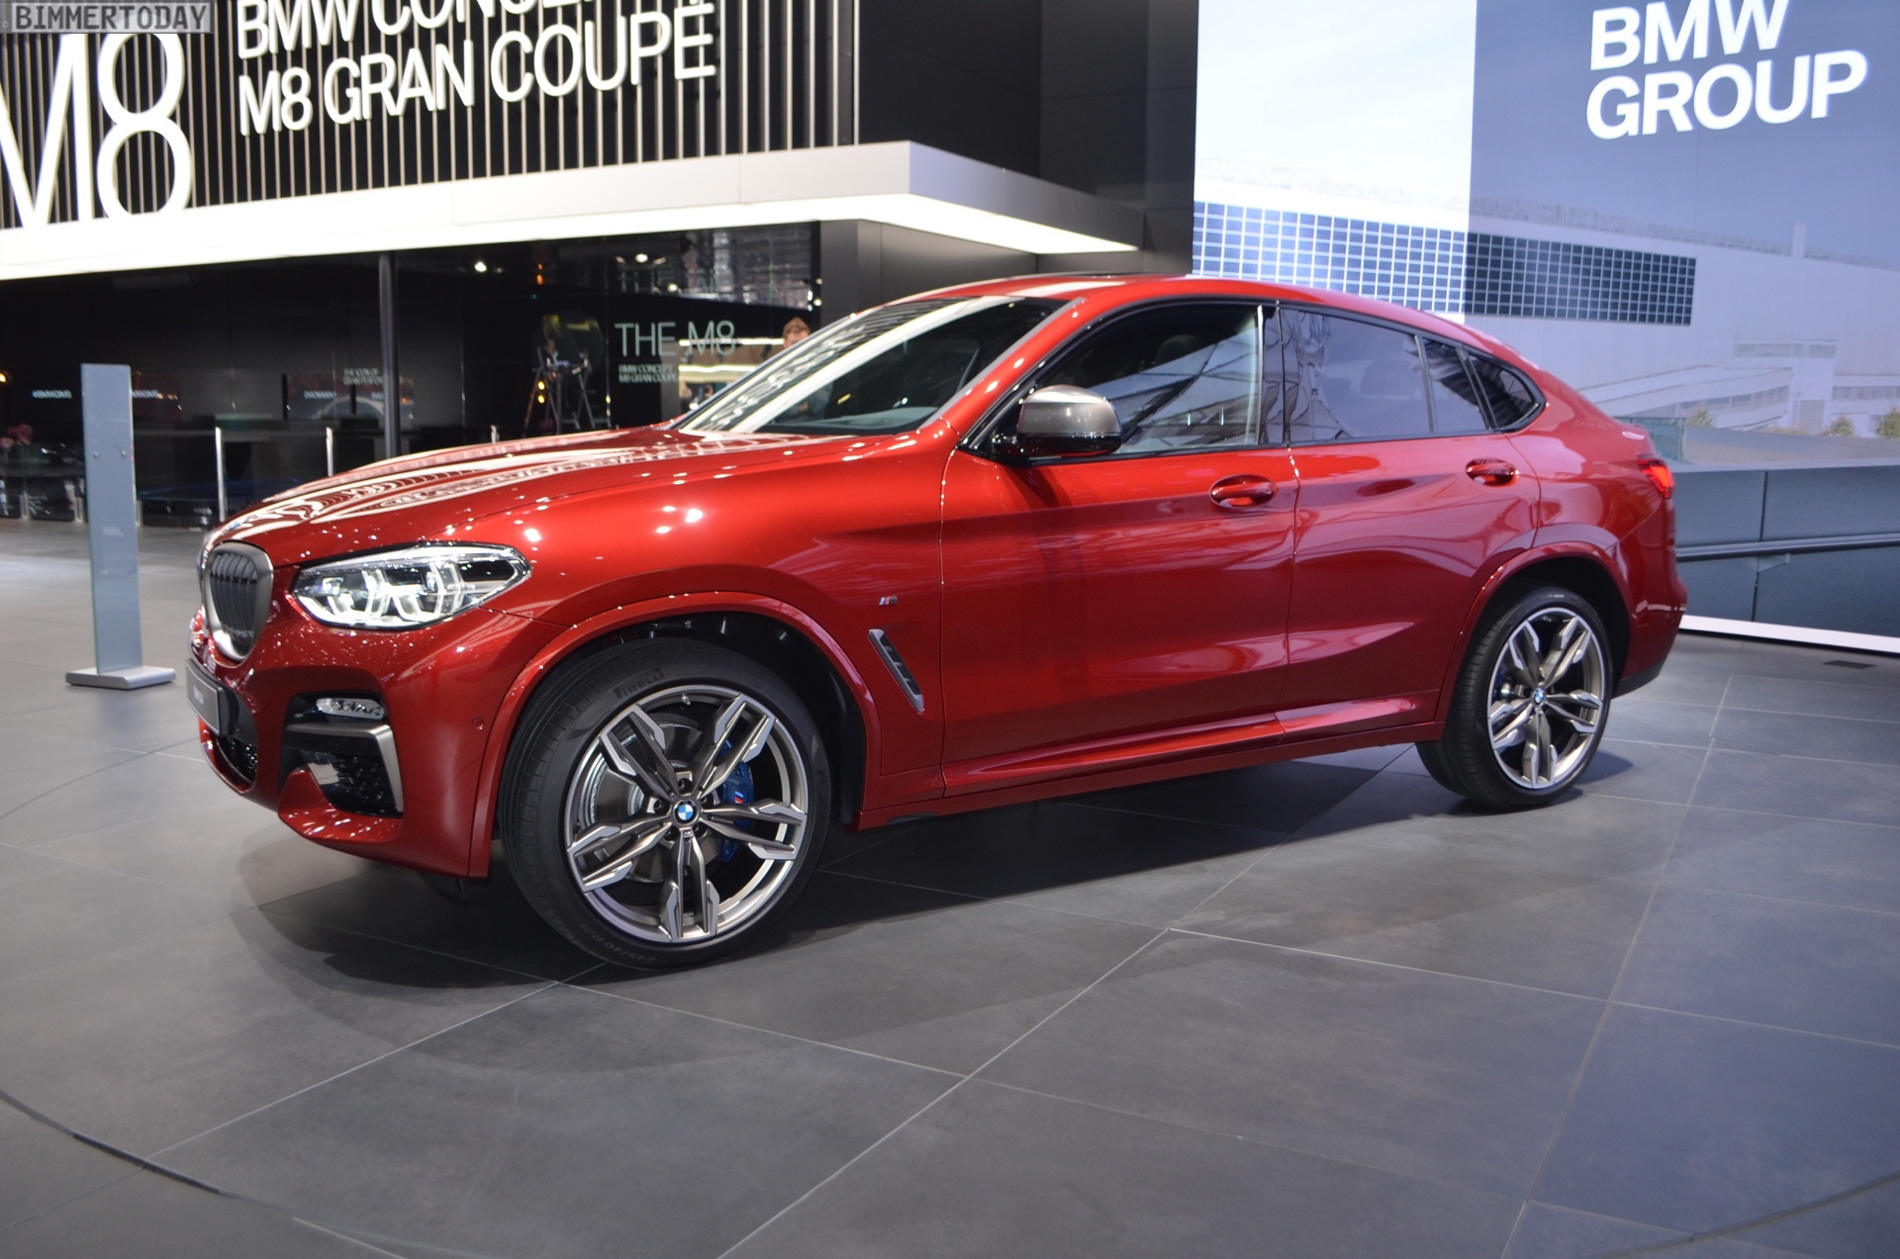 2018 Geneva Motor Show New Bmw X4 In Flamenco Red